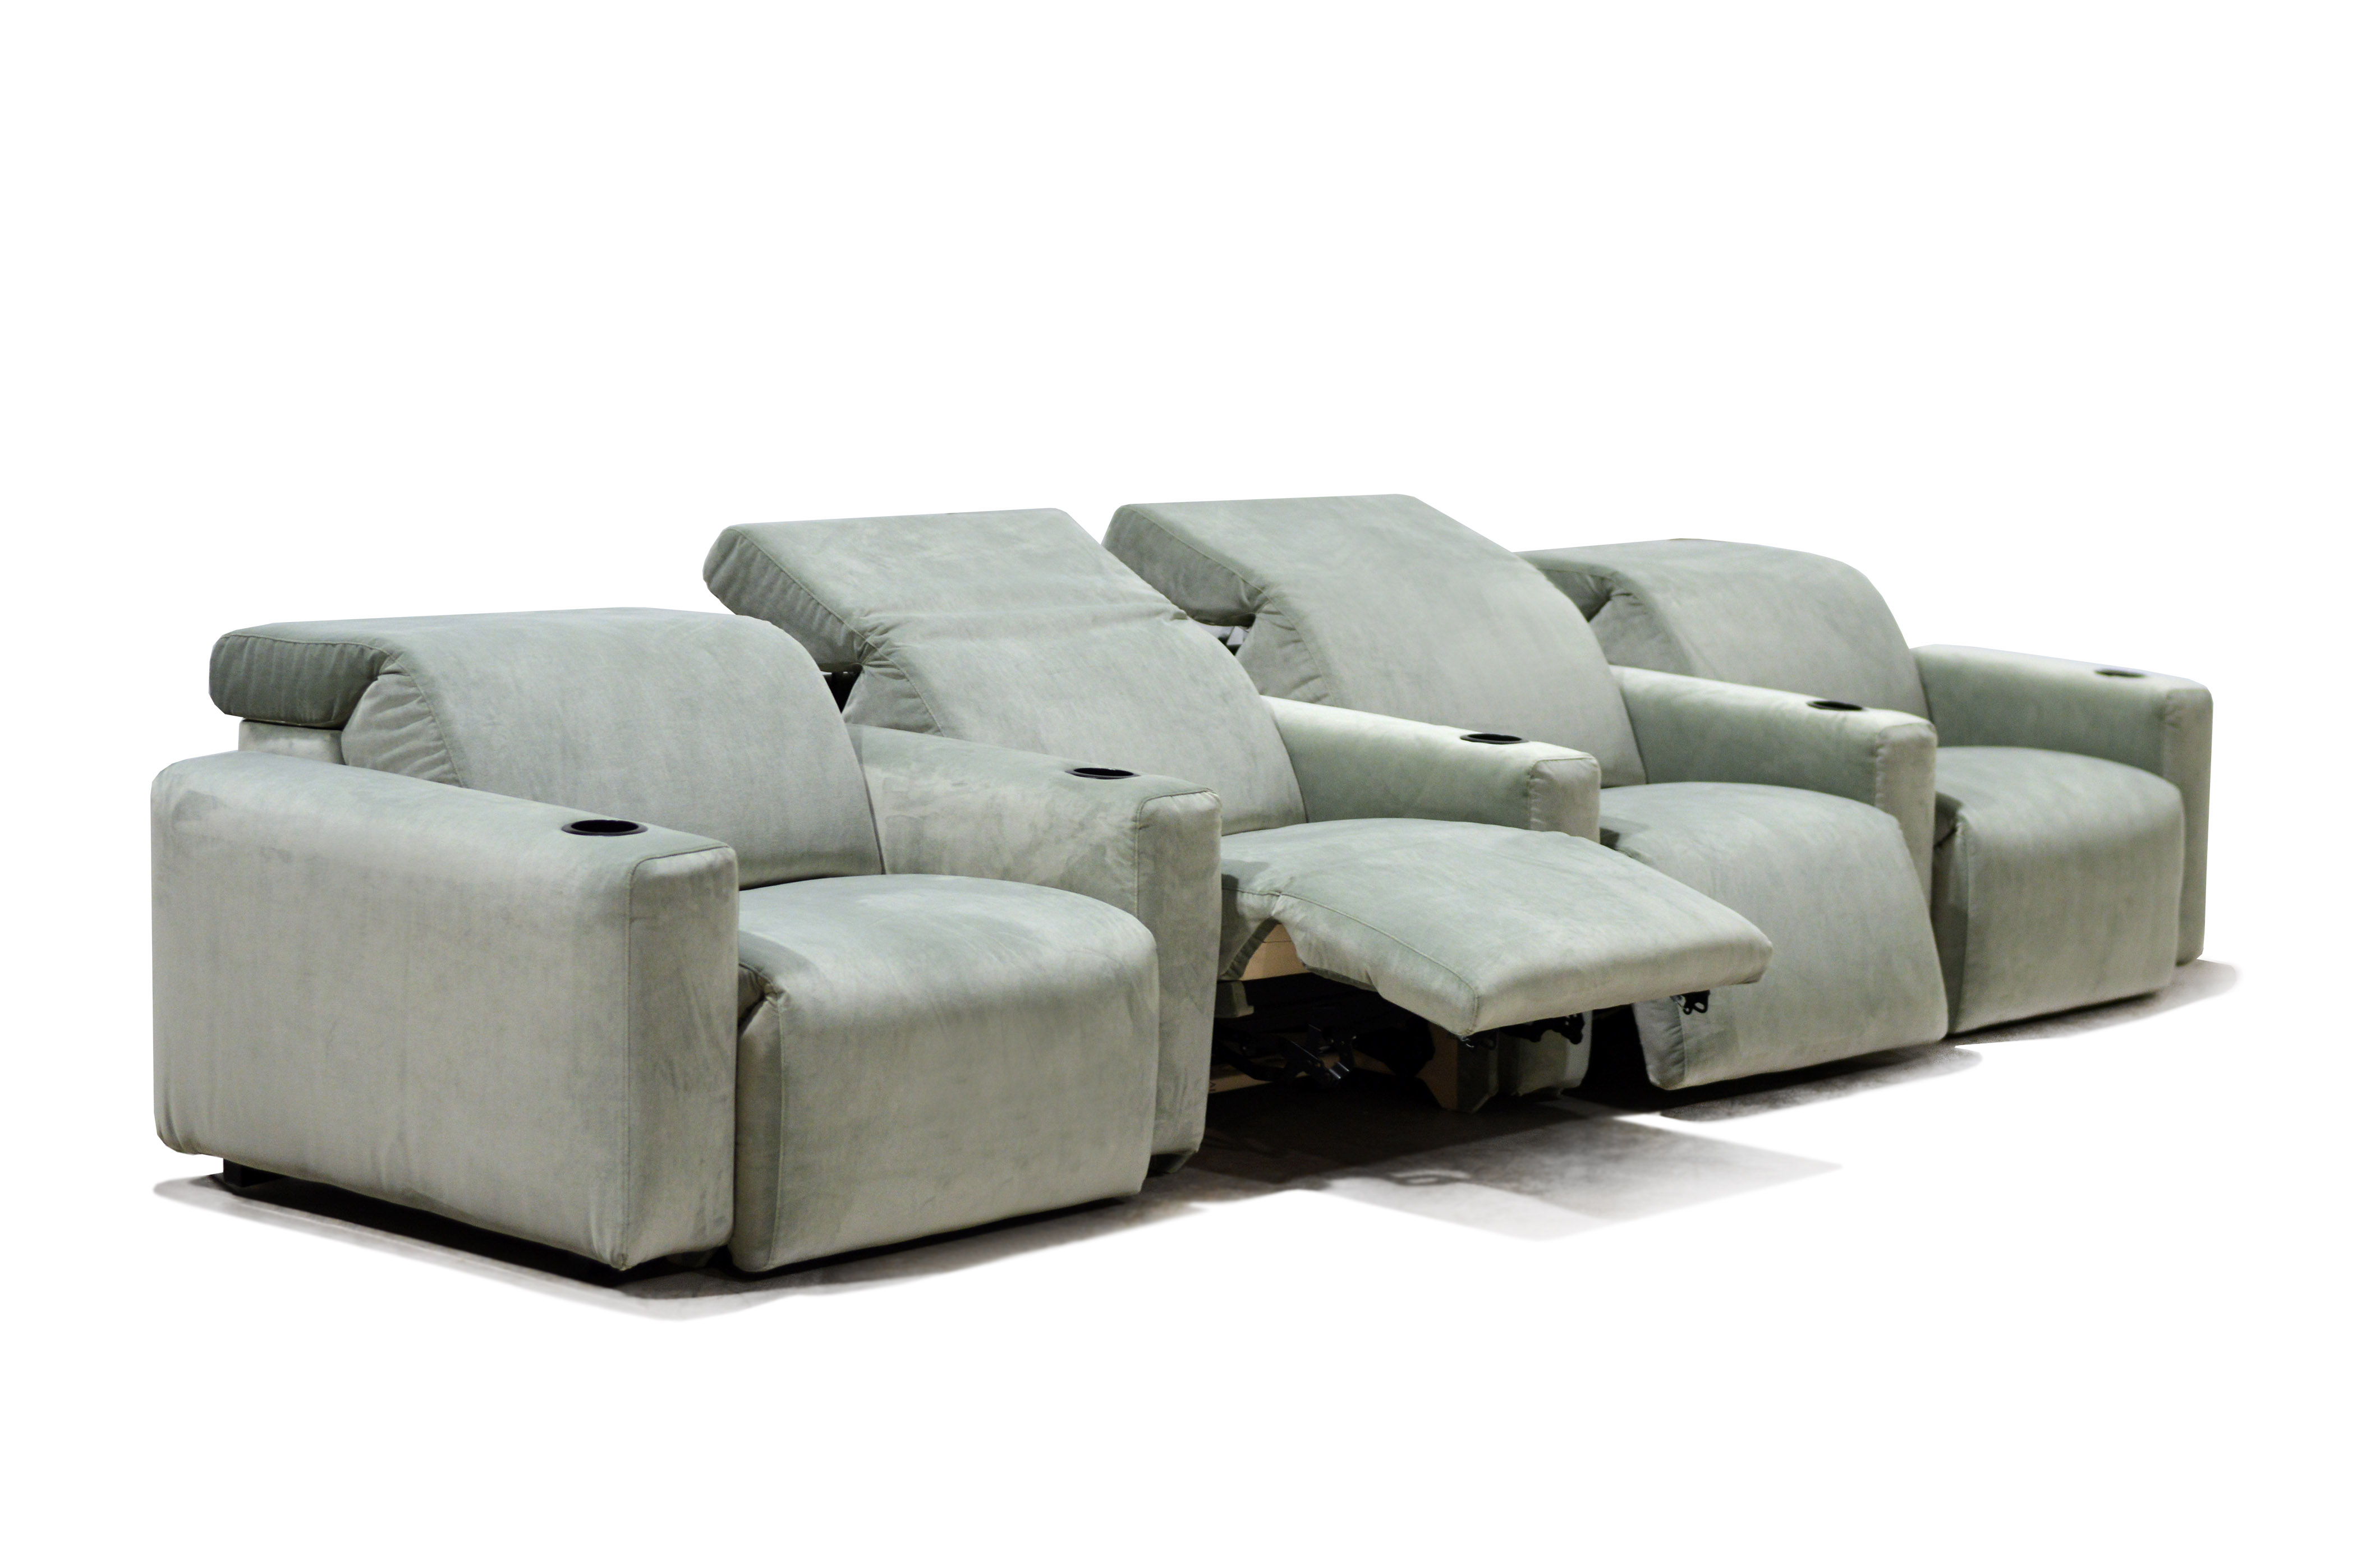 home theatre seating, home theatre, chain of cinema seating, luxury cinema seating